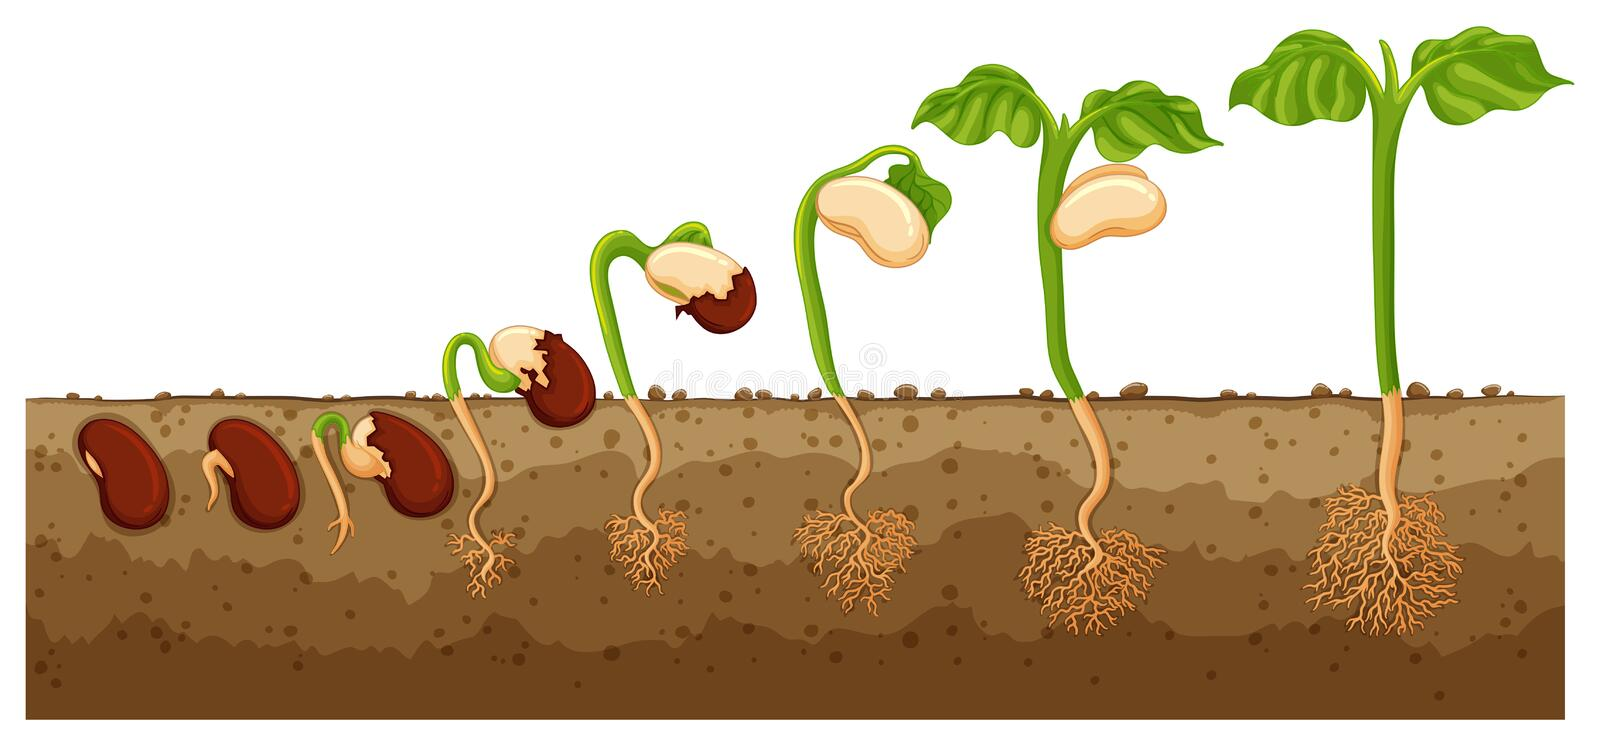 Seed growing into tree stock illustration